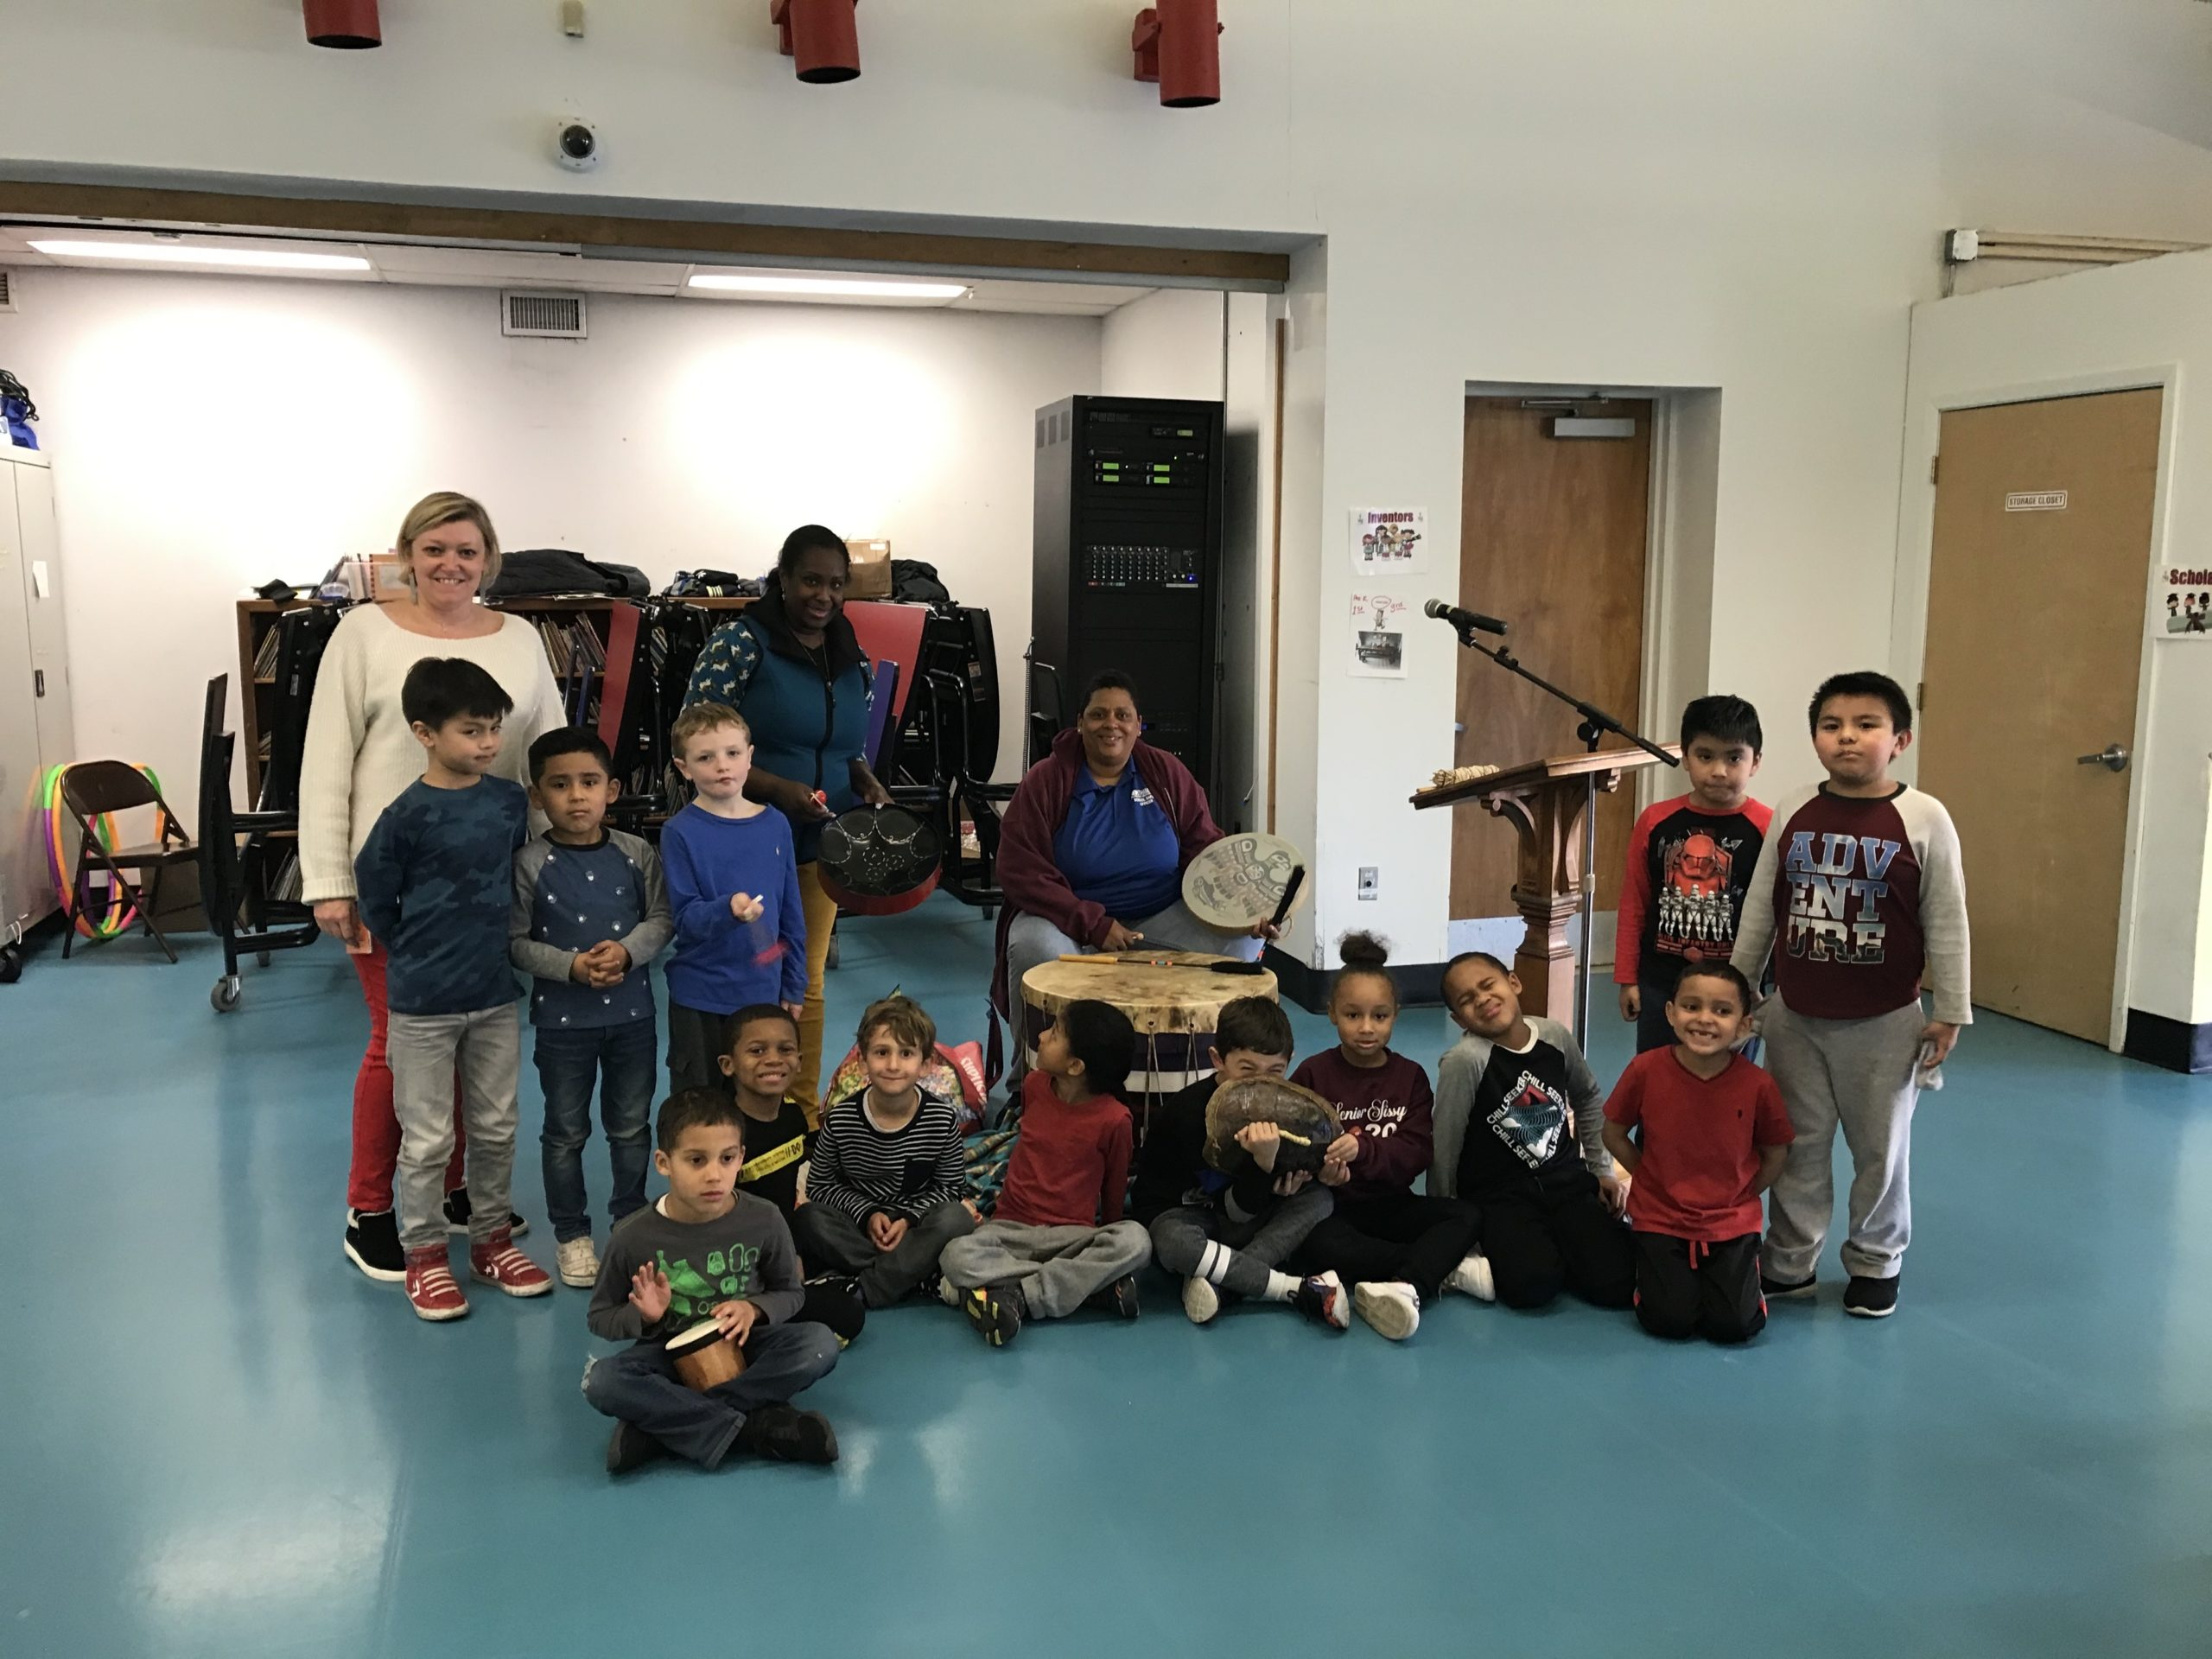 As part of a science lesson on sound, Southampton Elementary School first graders recently participated in a drumming lesson with Serena Lee of the Shinnecock Nation. The students experienced how vibrations make sound and how they can use sound to communicate.